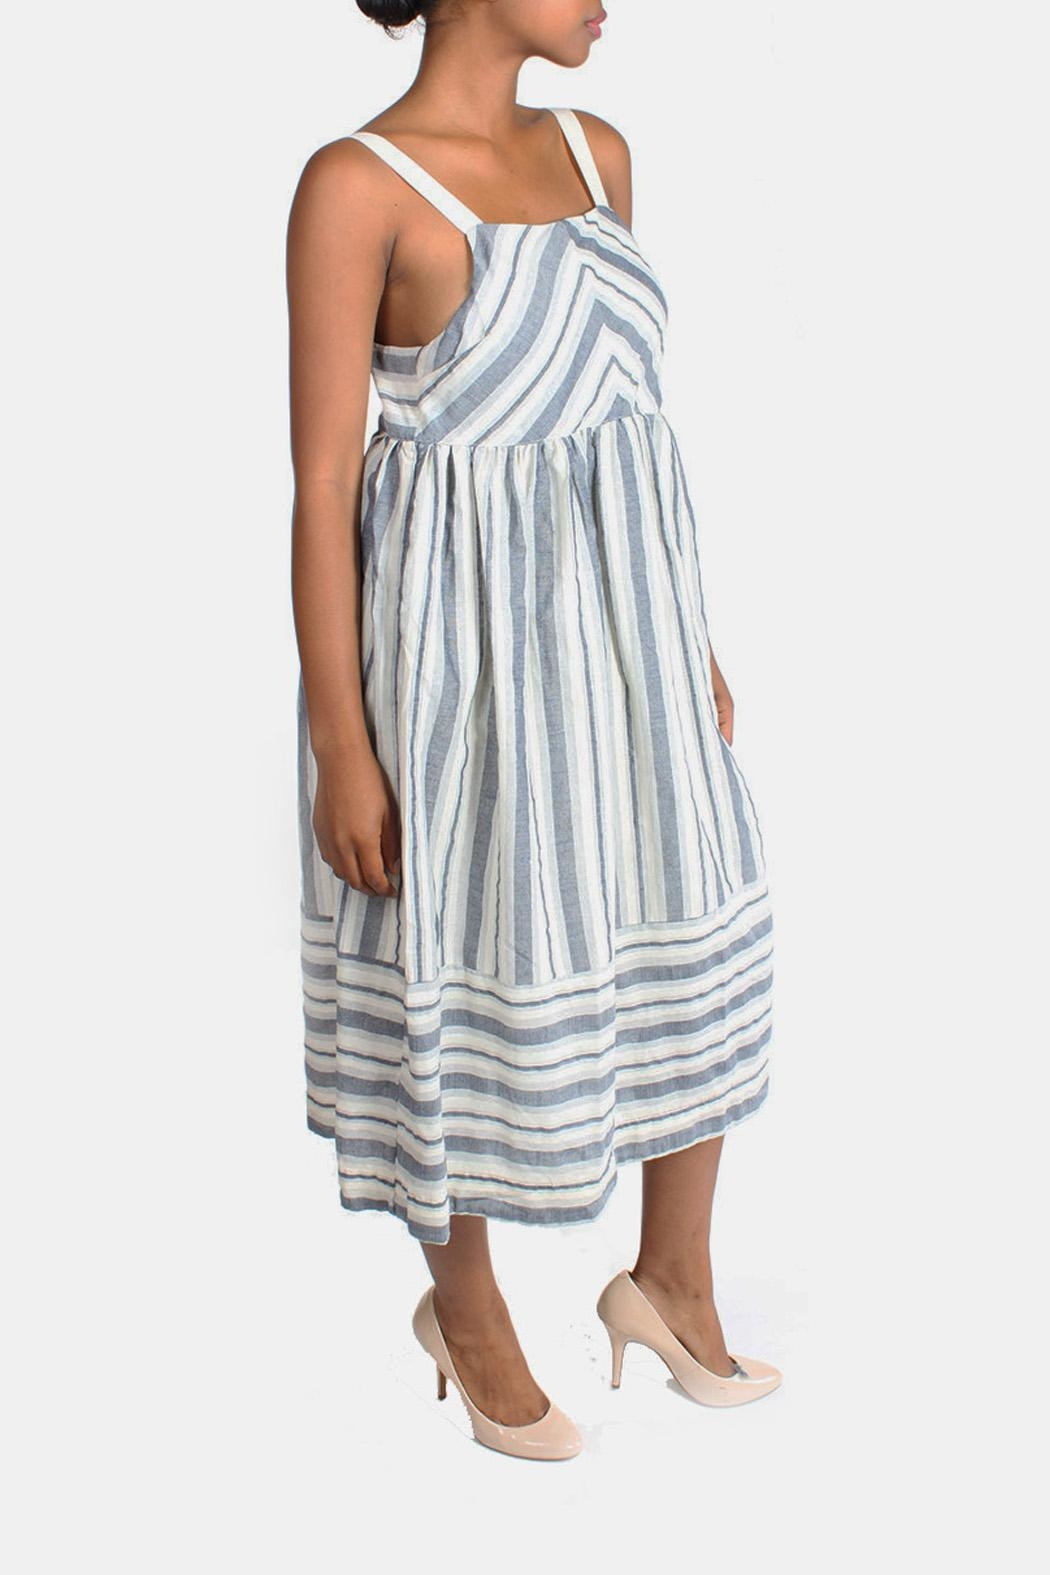 Ciel Shoreside Striped Dress - Side Cropped Image